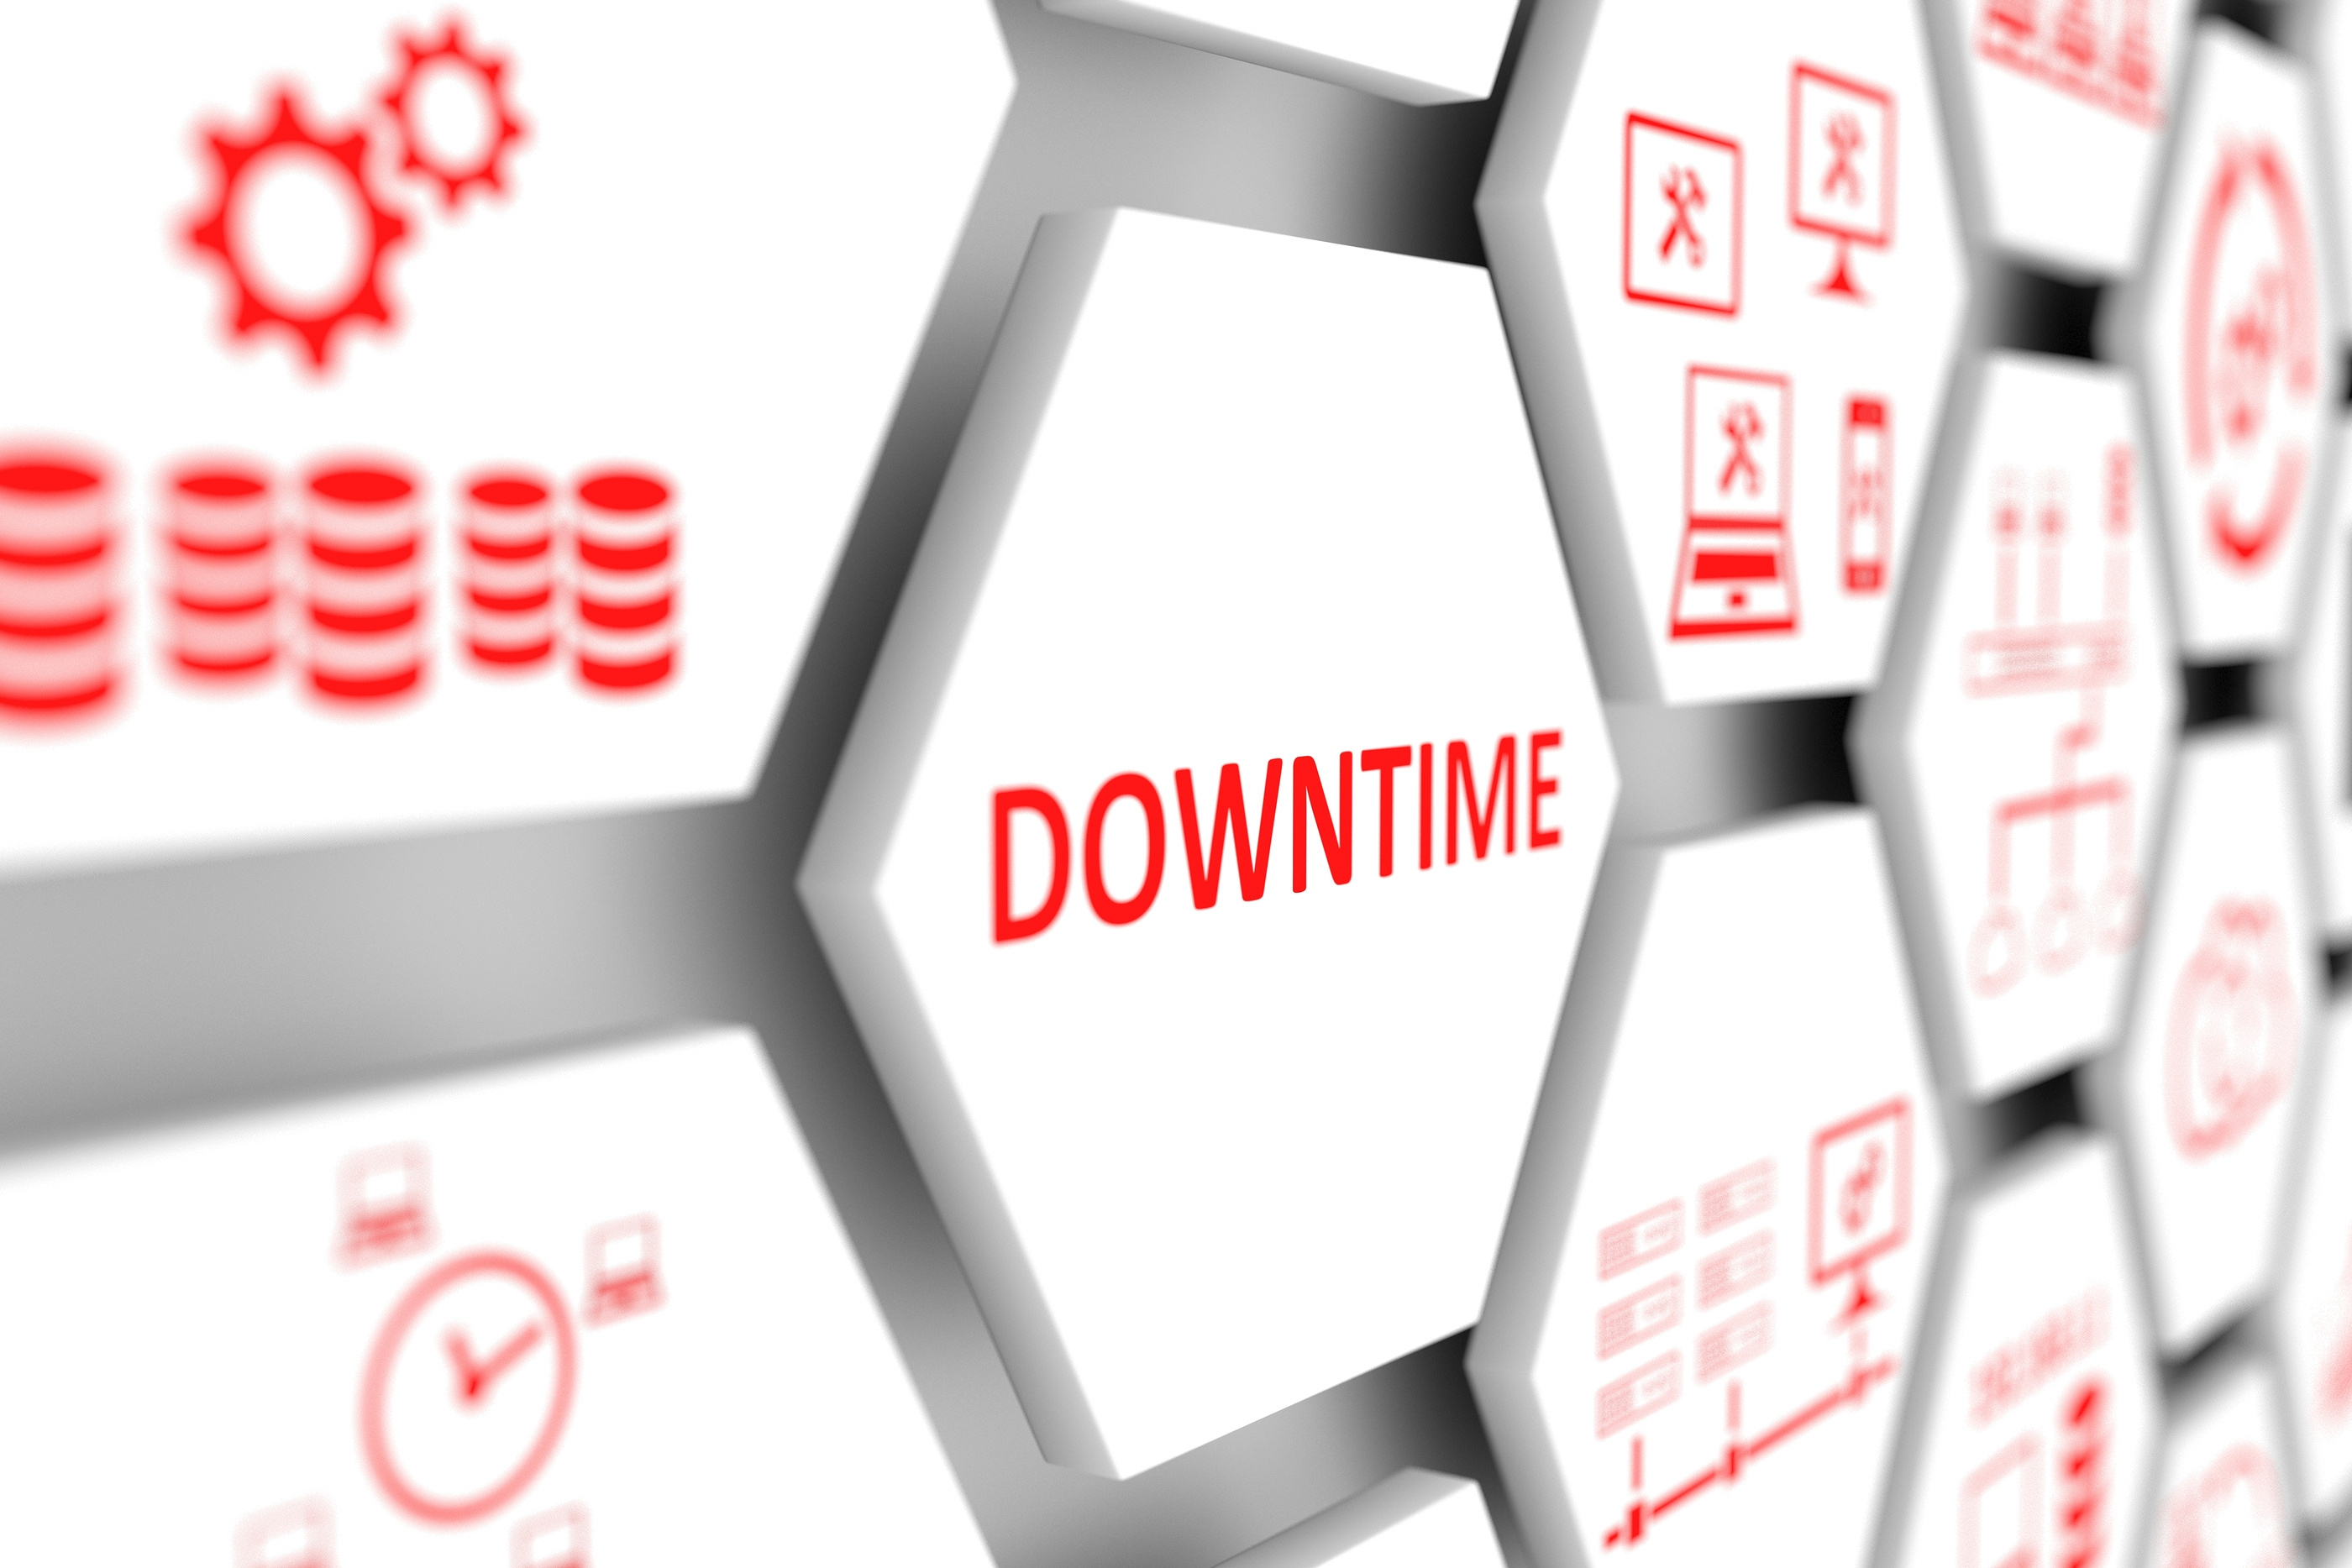 How Much is Downtime Really Costing You?